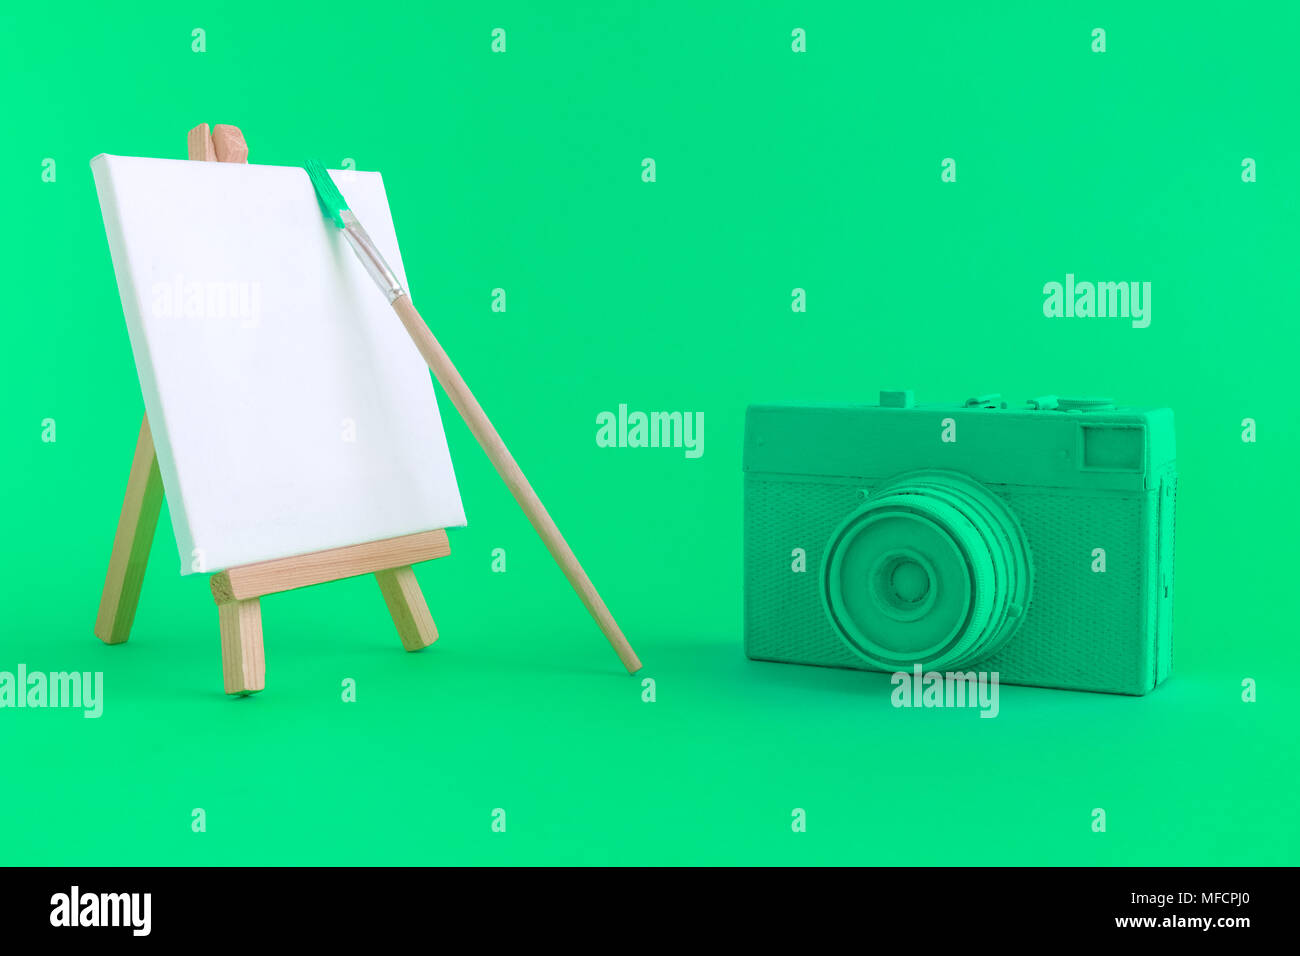 Retro Photo Camera Painted In Neon Green Color And Blank Art